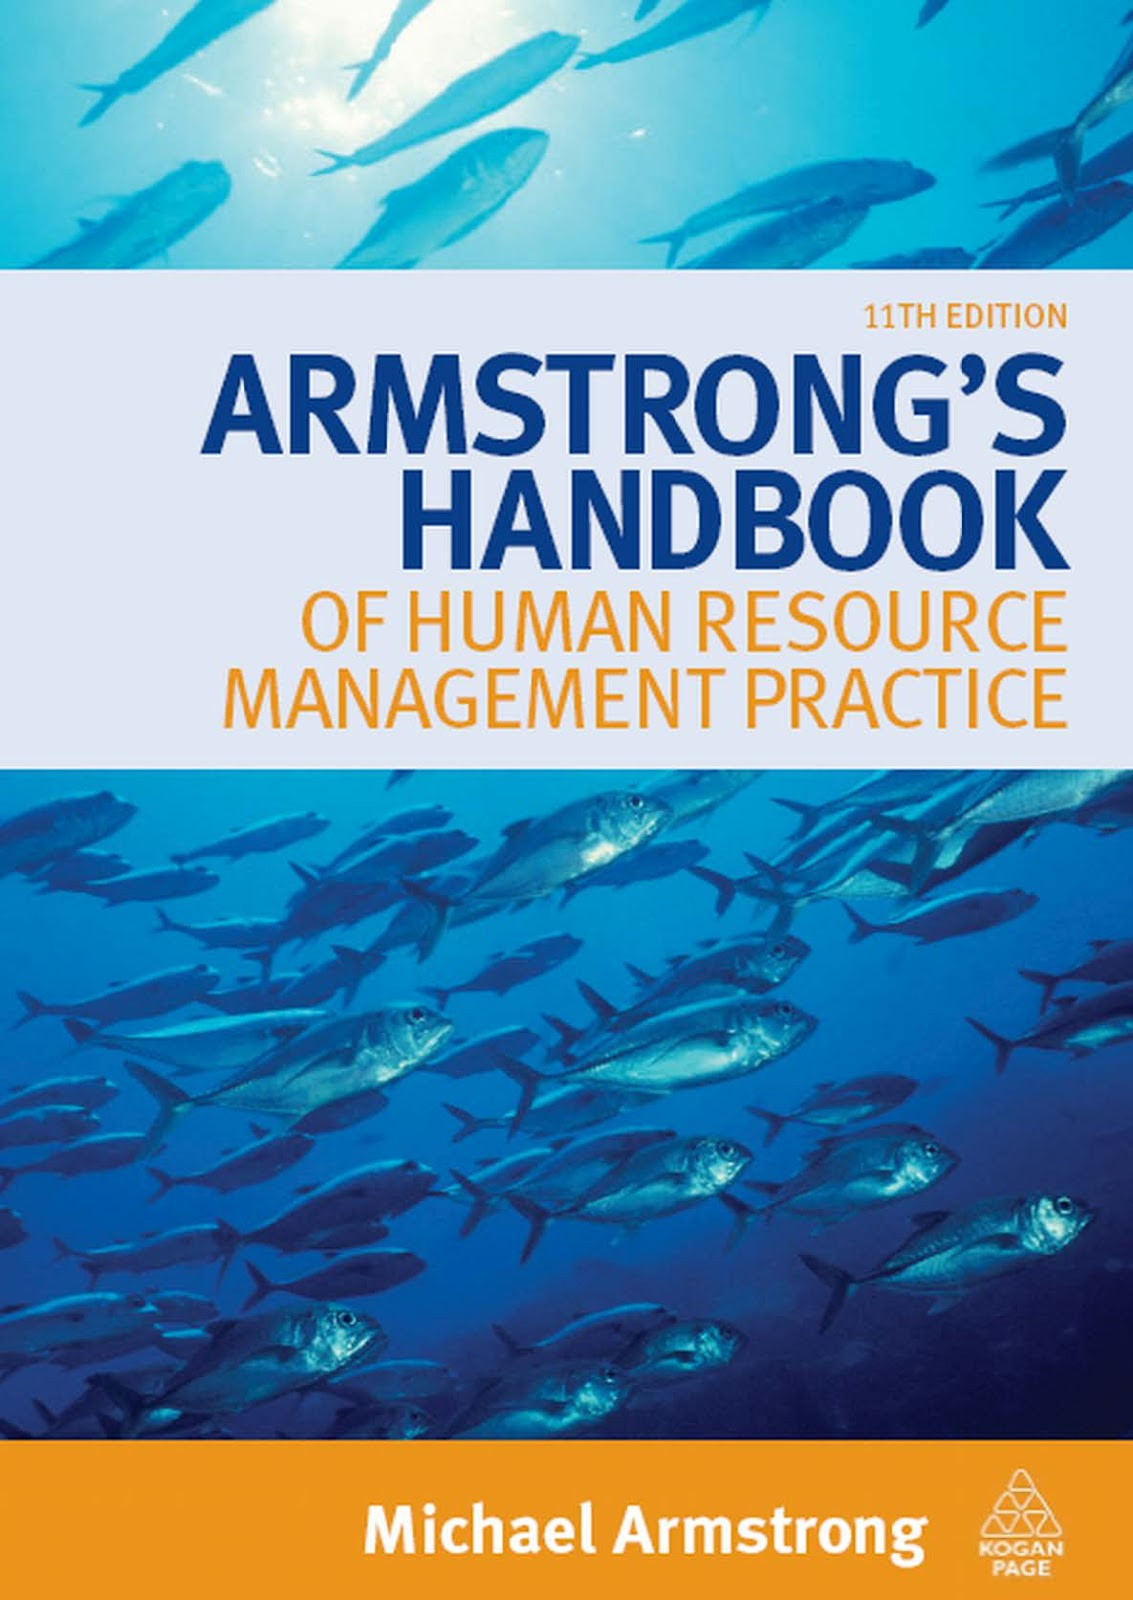 Armstrong's Handbook of Human Resource Management Practice - 1001 Ebook - Free Ebook Download